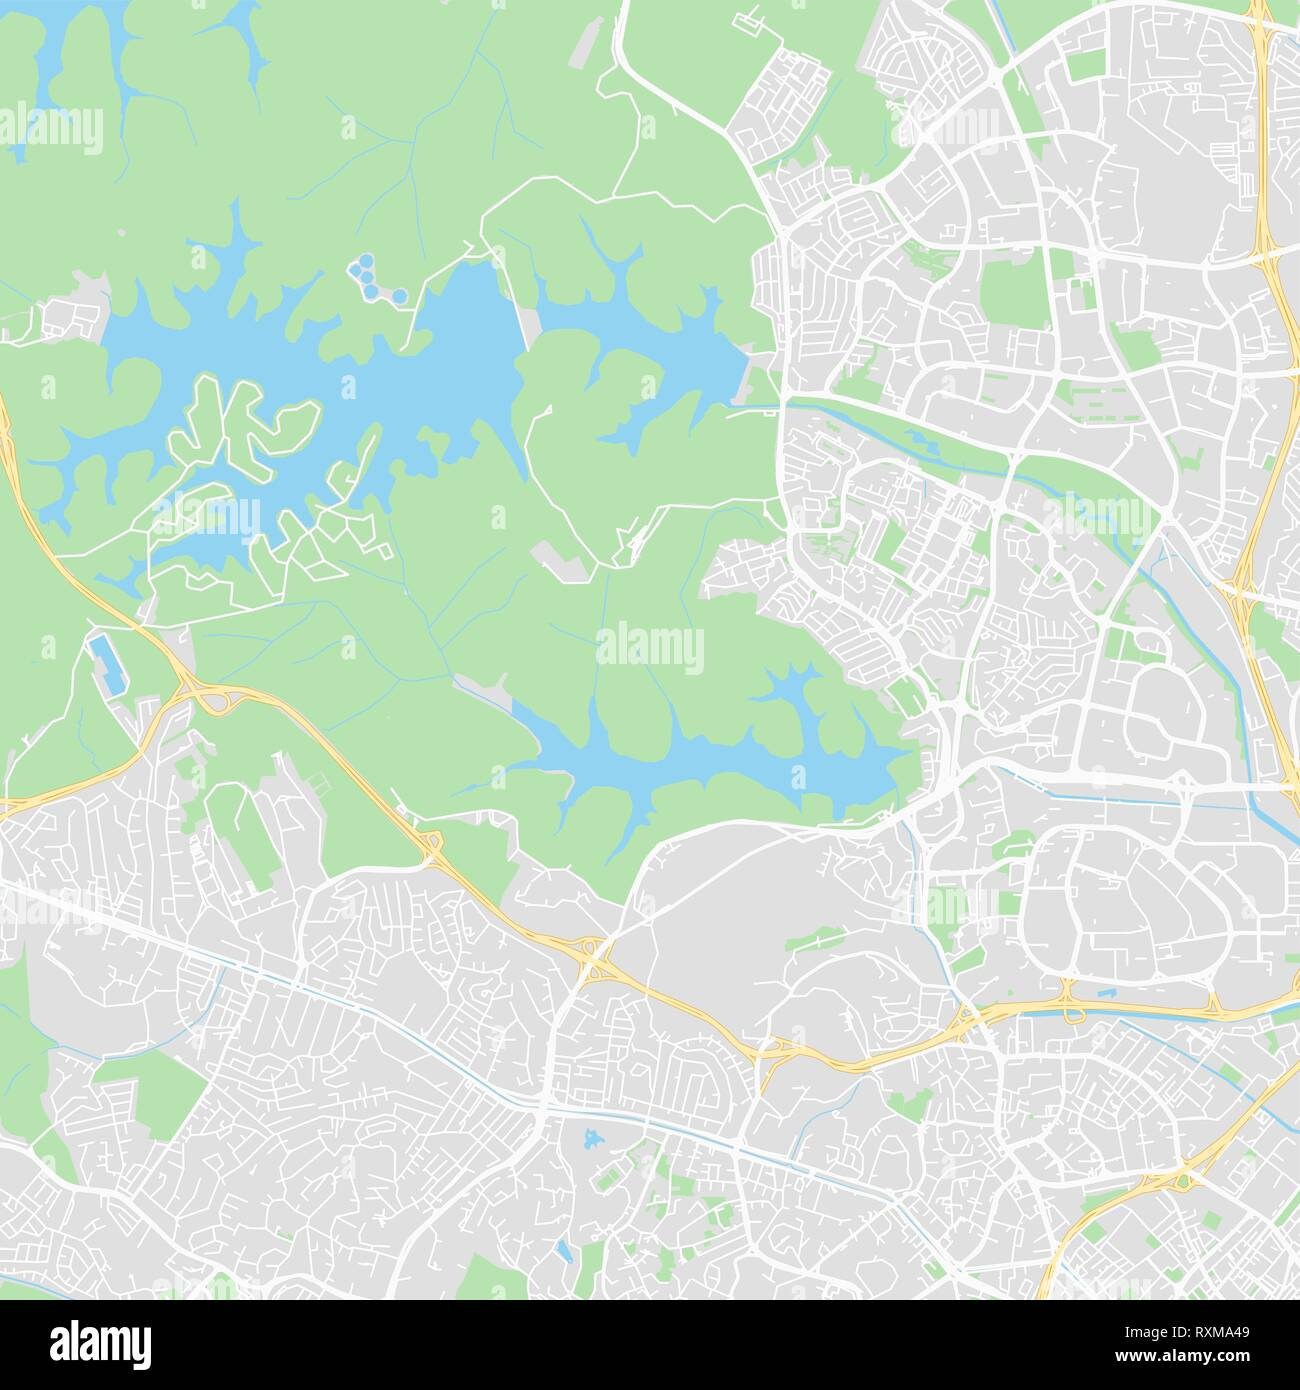 Downtown vector map of Singapore, Singapore. This printable map of Singapore contains lines and classic colored shapes for land mass, parks, water, ma Stock Vector